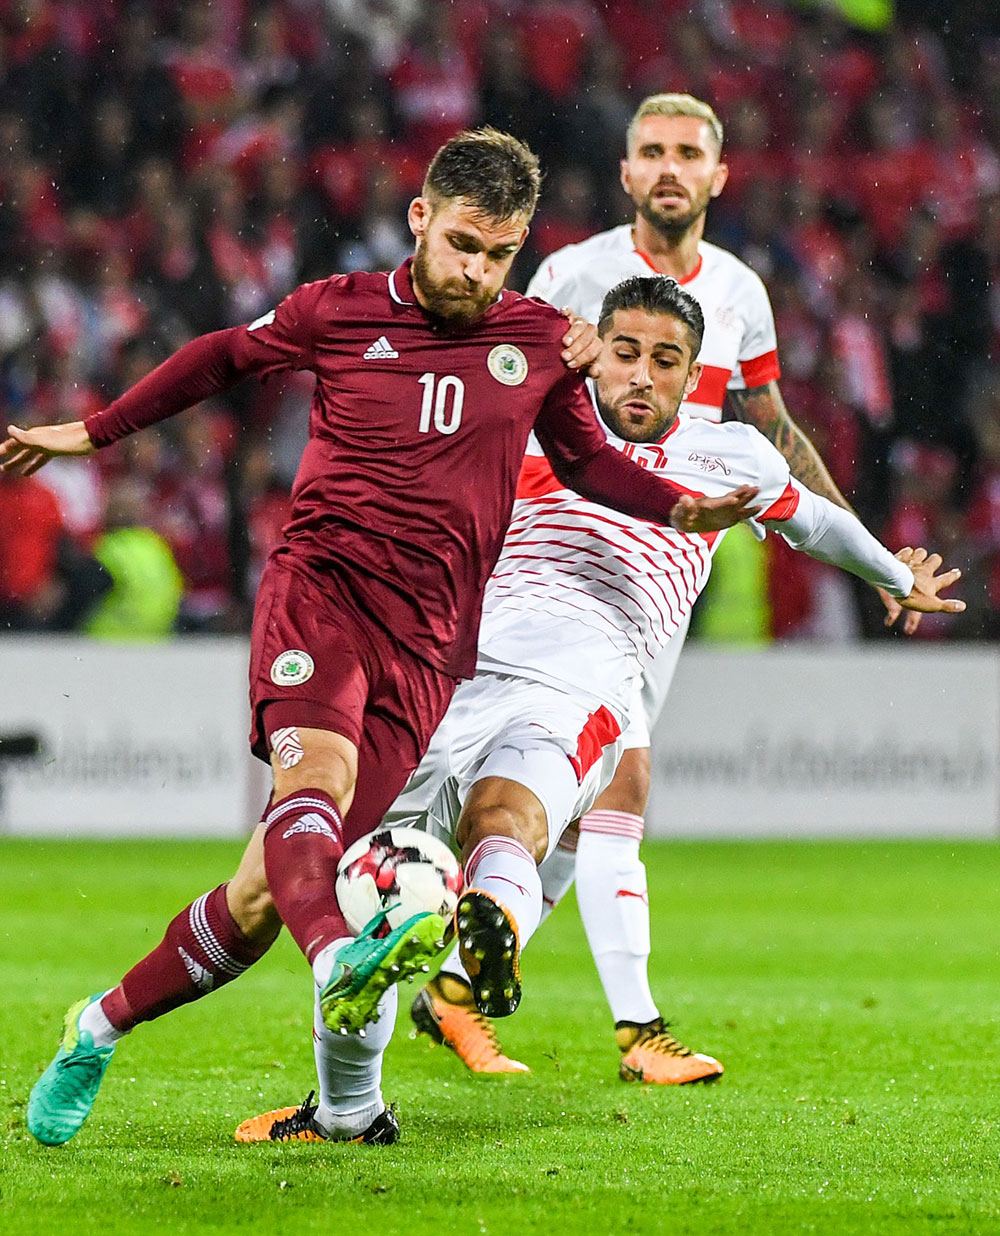 Ricardo Rodriguez and Valerijs Sabala during Latvia-Switzerland at Stadions Skonto on September 3, 2017. (ILMARS ZNOTINS/AFP/Getty Images)